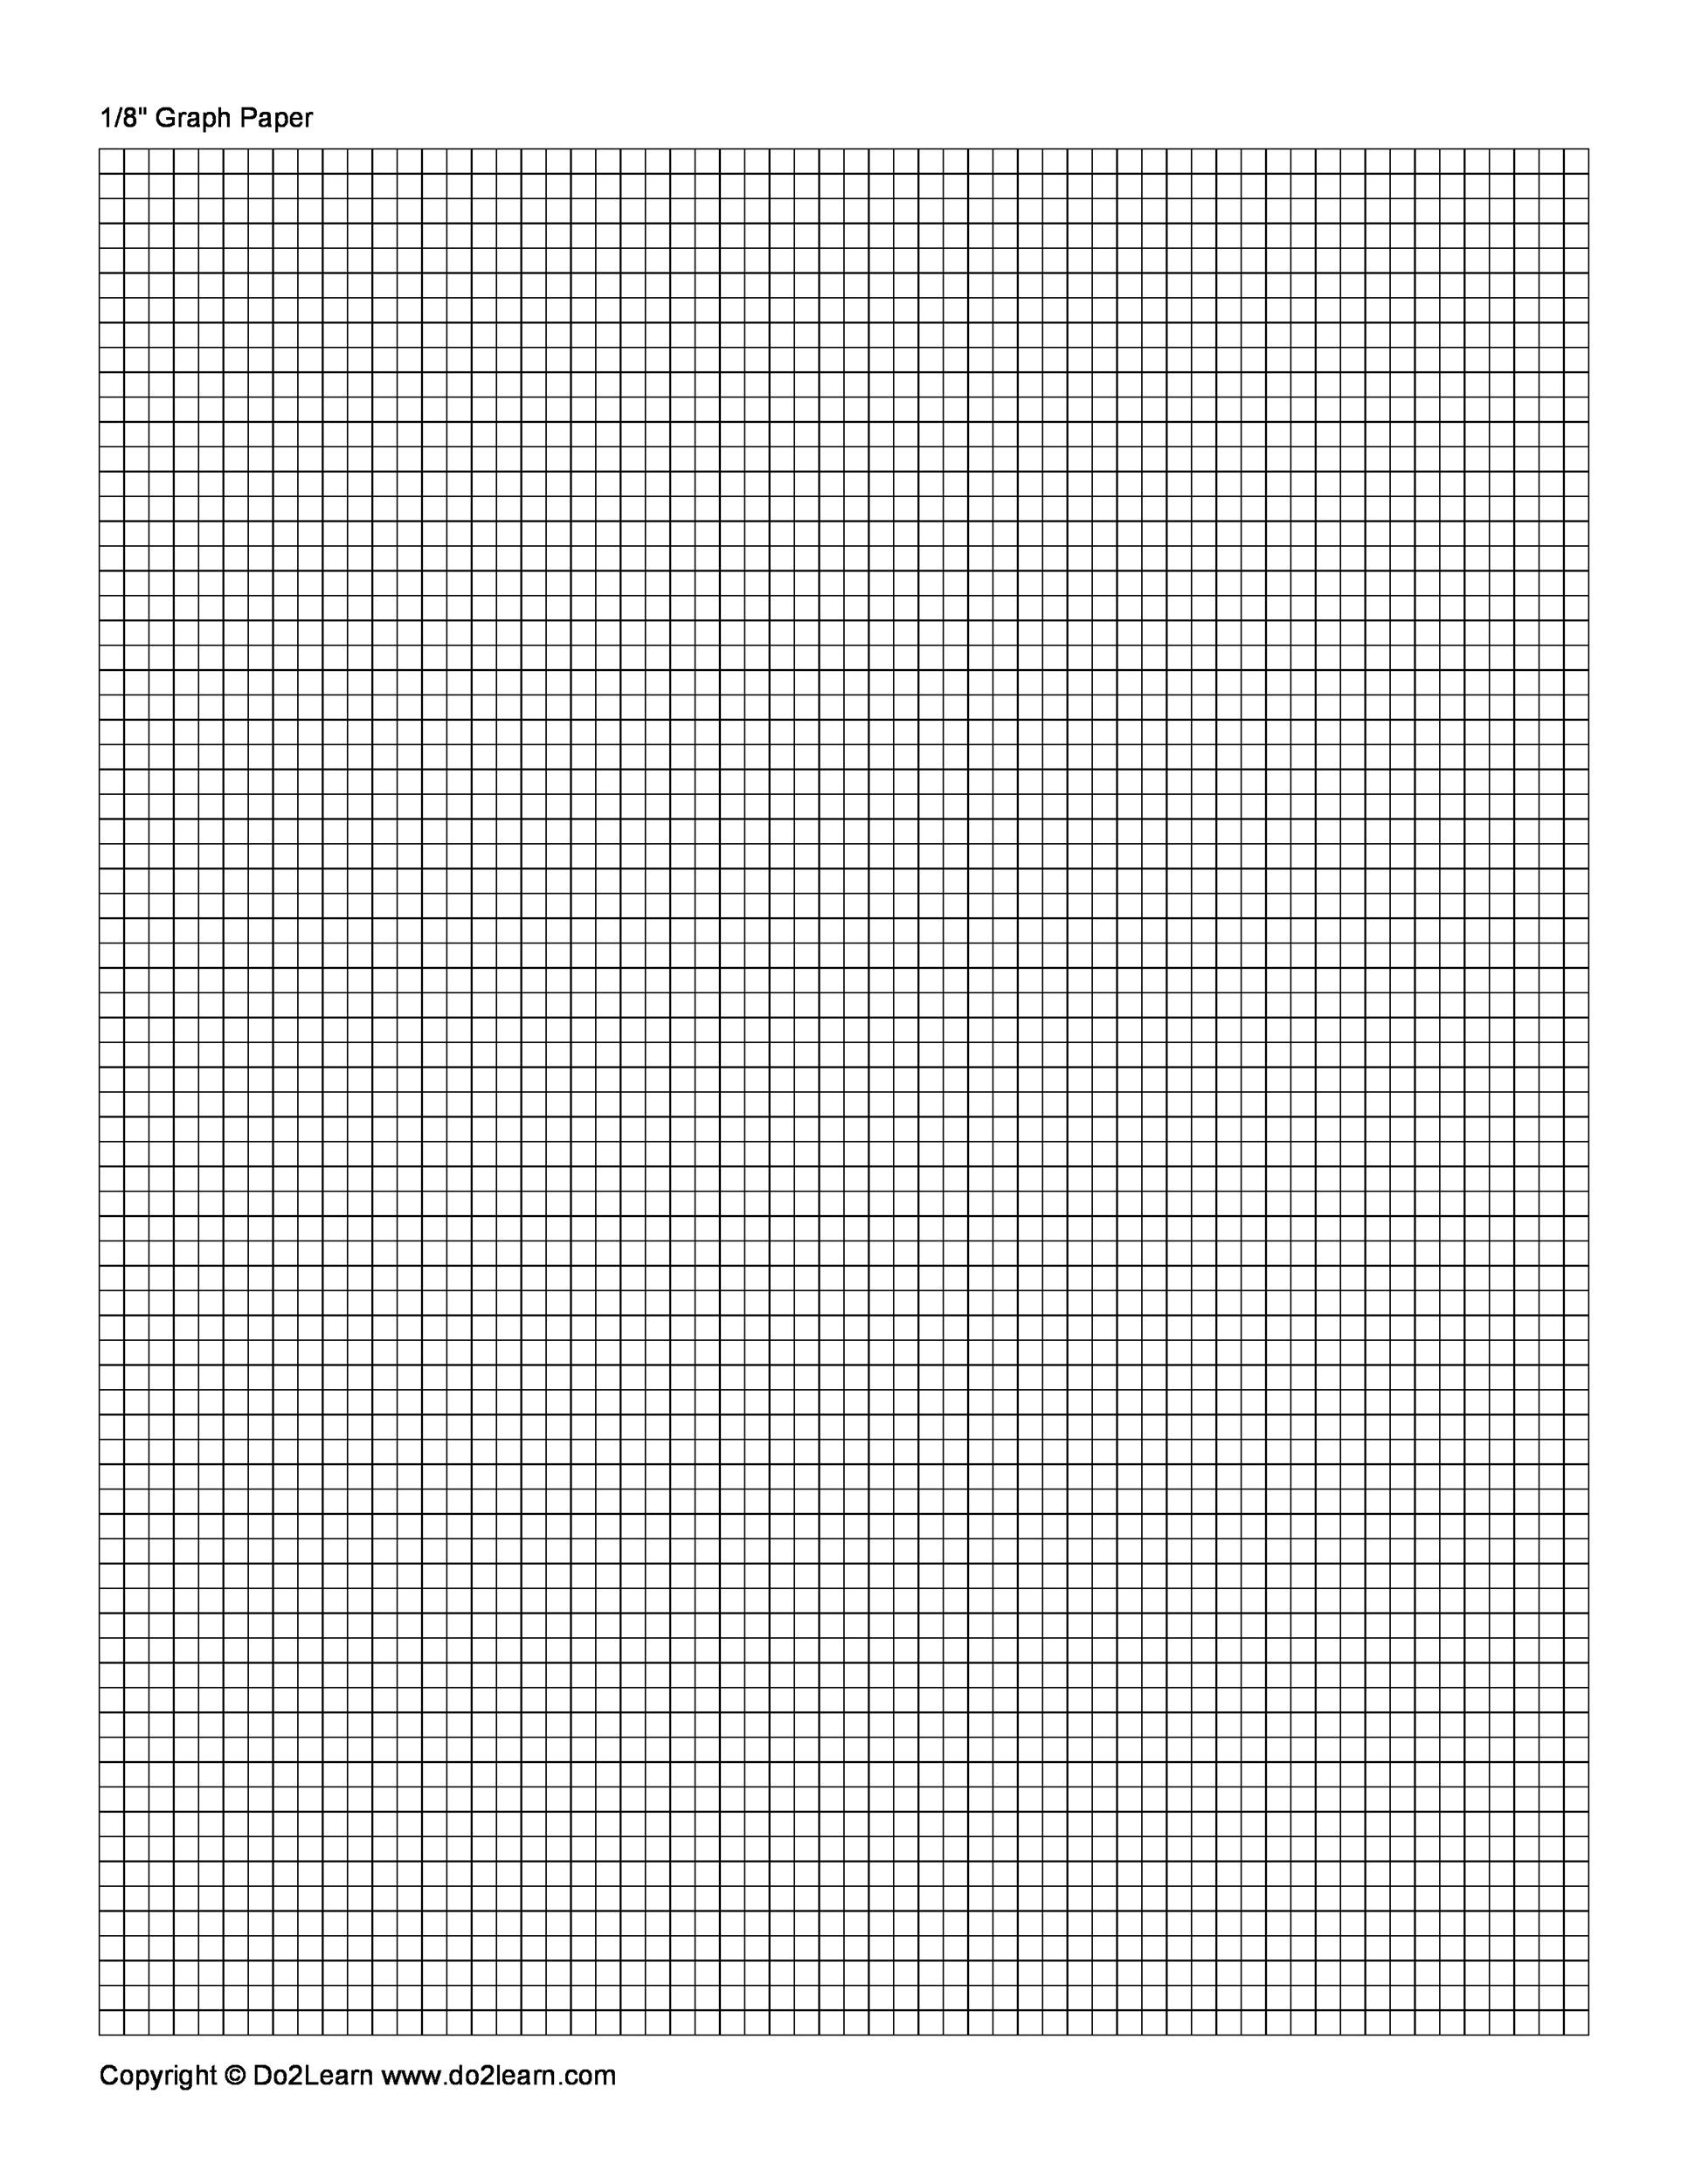 Printable Graph Paper Template 01 Intended Printable Blank Graph Paper